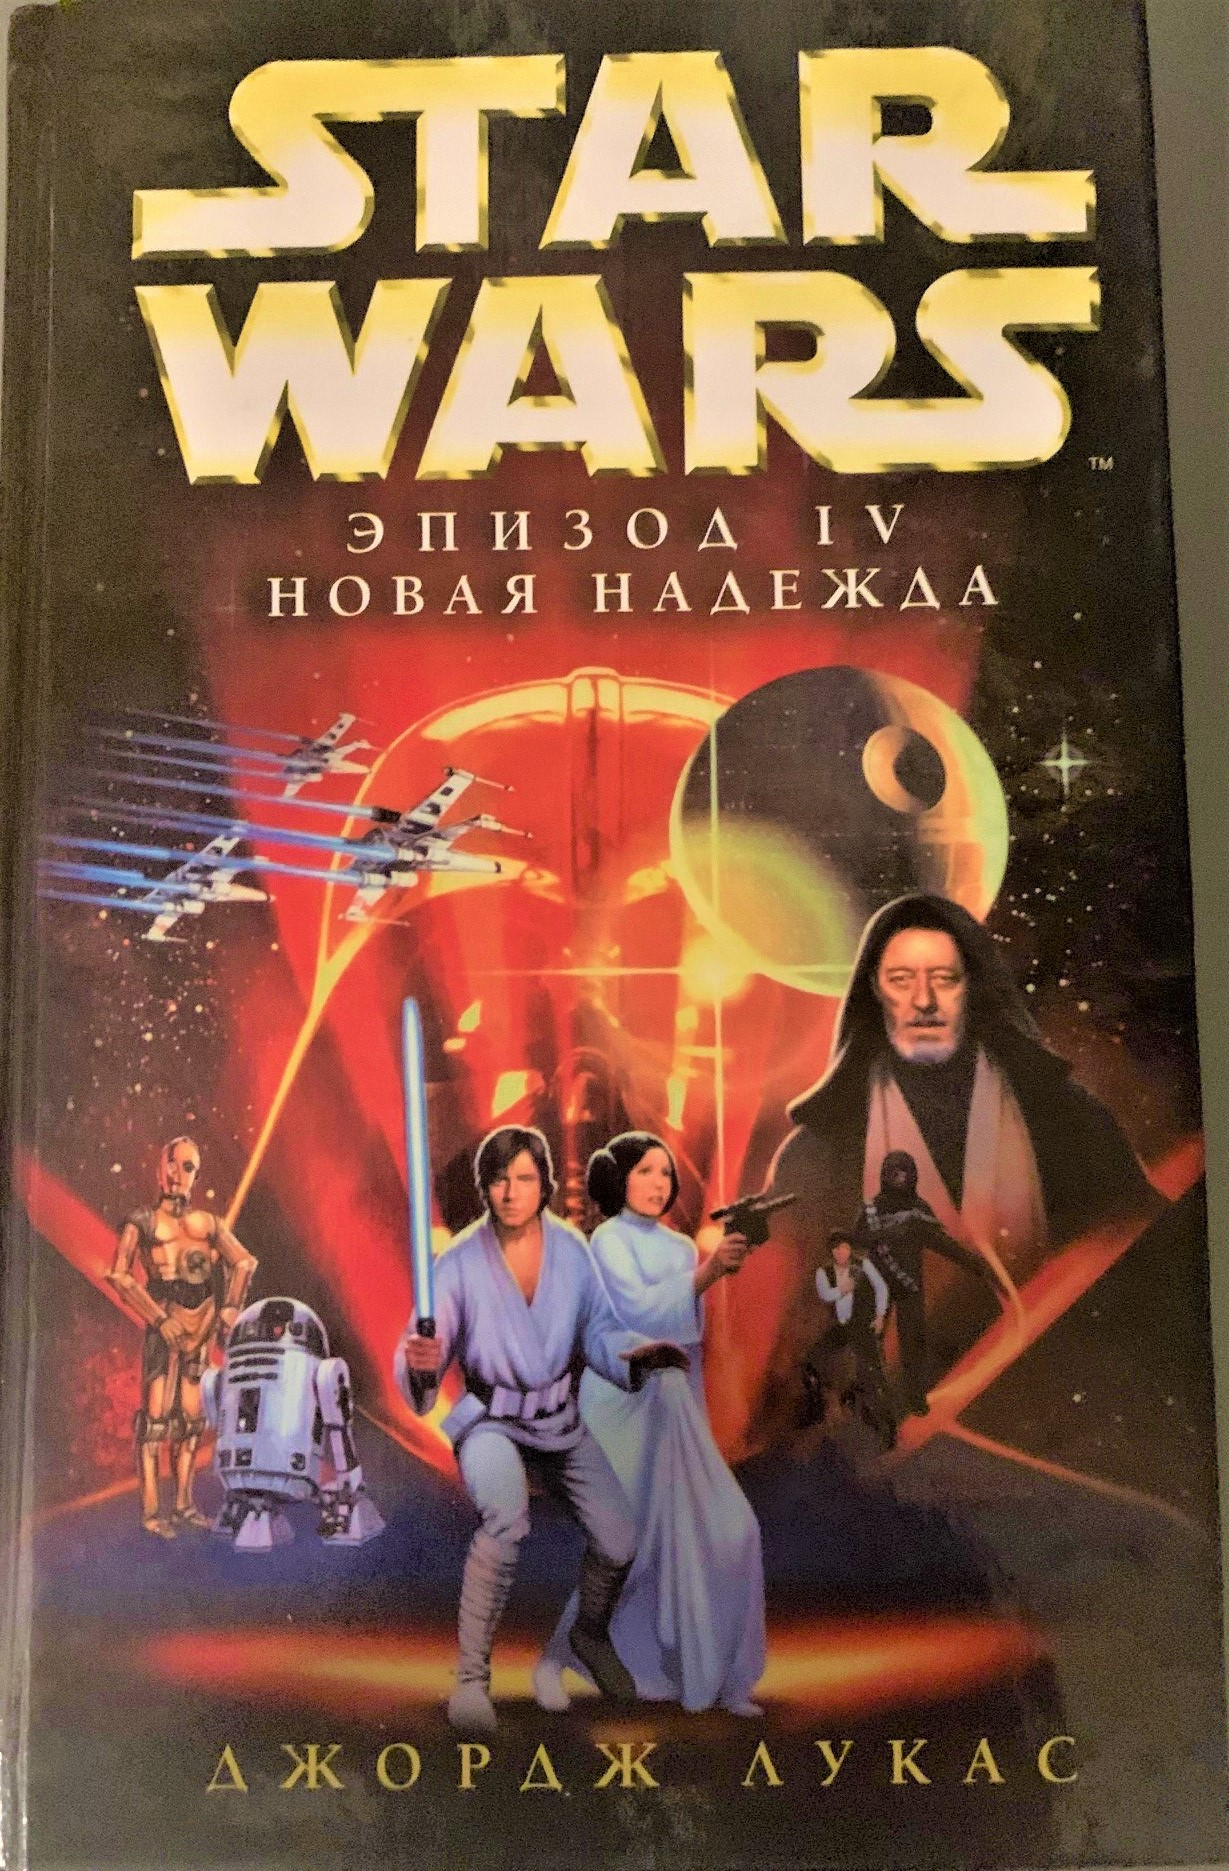 Star Wars: A New Hope (Russian)